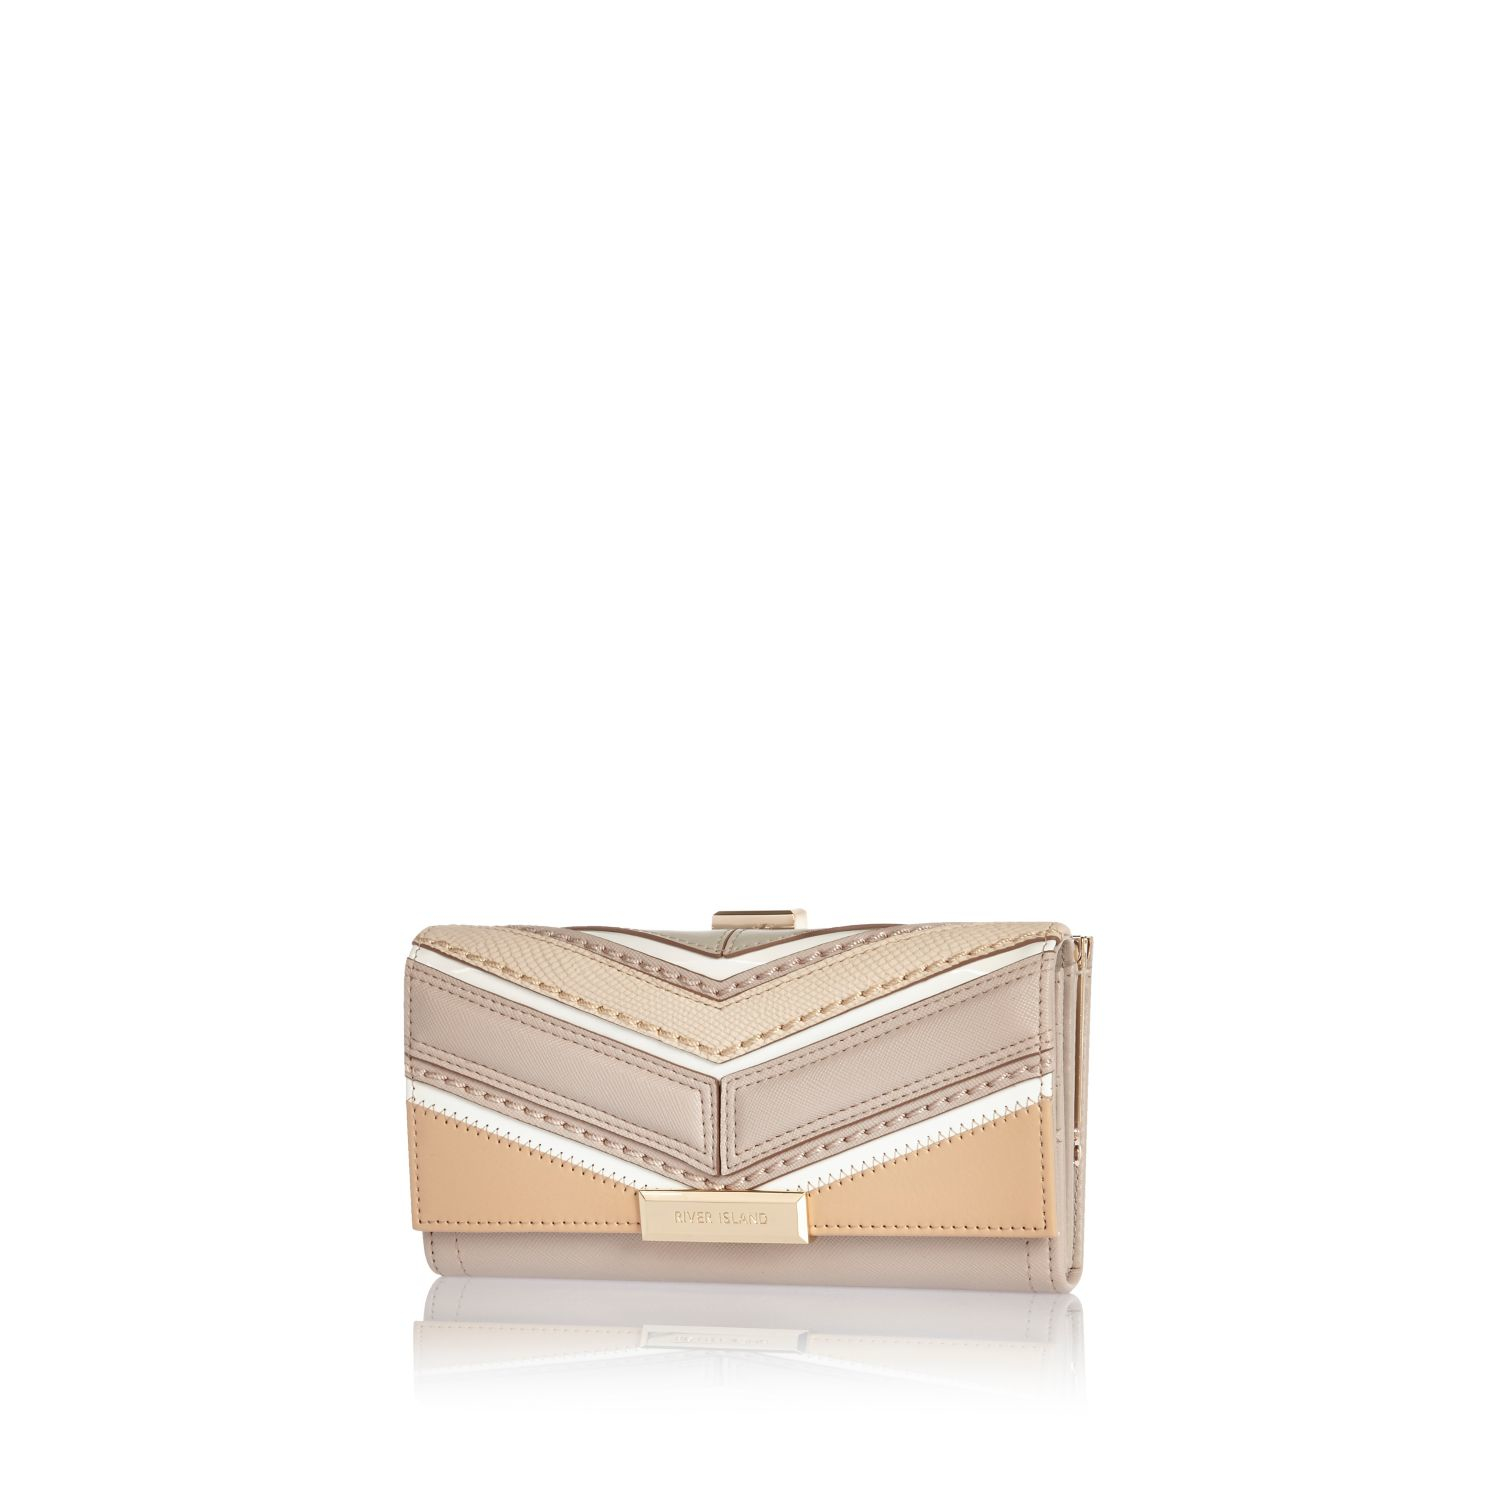 Sportballoons further River Island Pale Pink Patchwork Clip Top Purse moreover 1 additionally Oscar Winners List 2017 2 also Thanksgiving Party Invitation Templates. on oscar envelope design